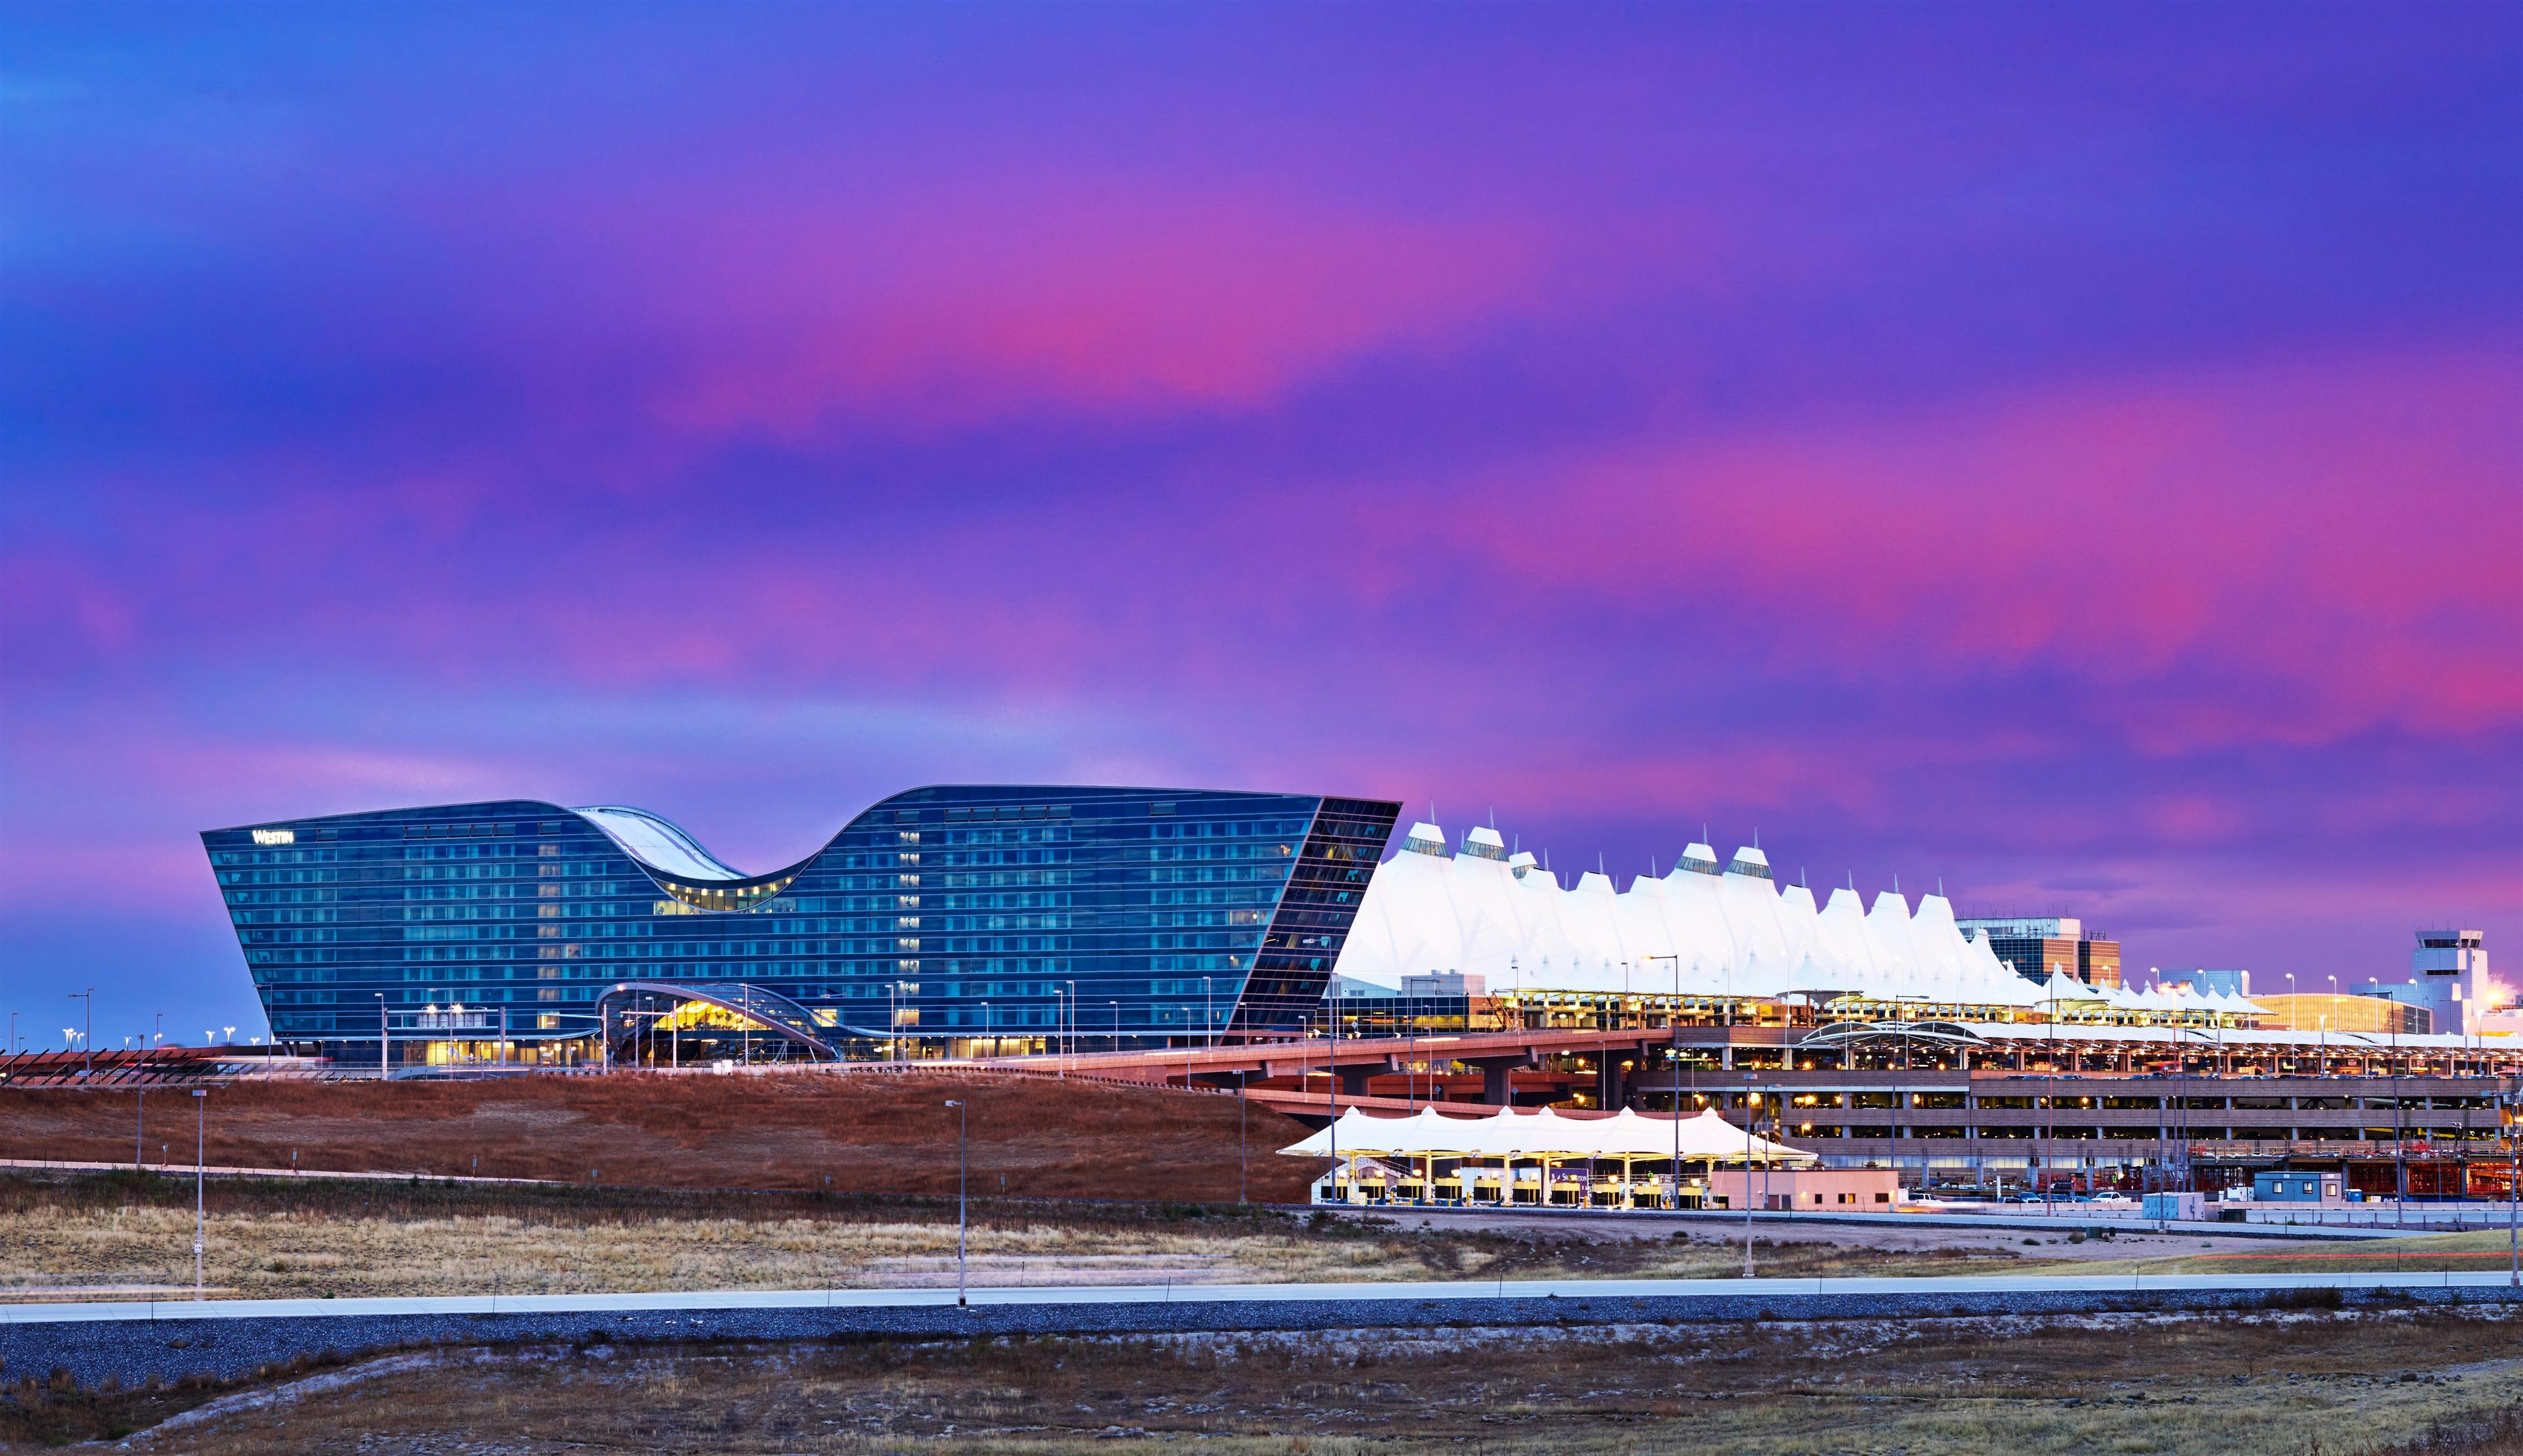 Book your stay with us at The Westin Denver International Airport and enjoy our wellness amenities in Denver made for inspired travelers